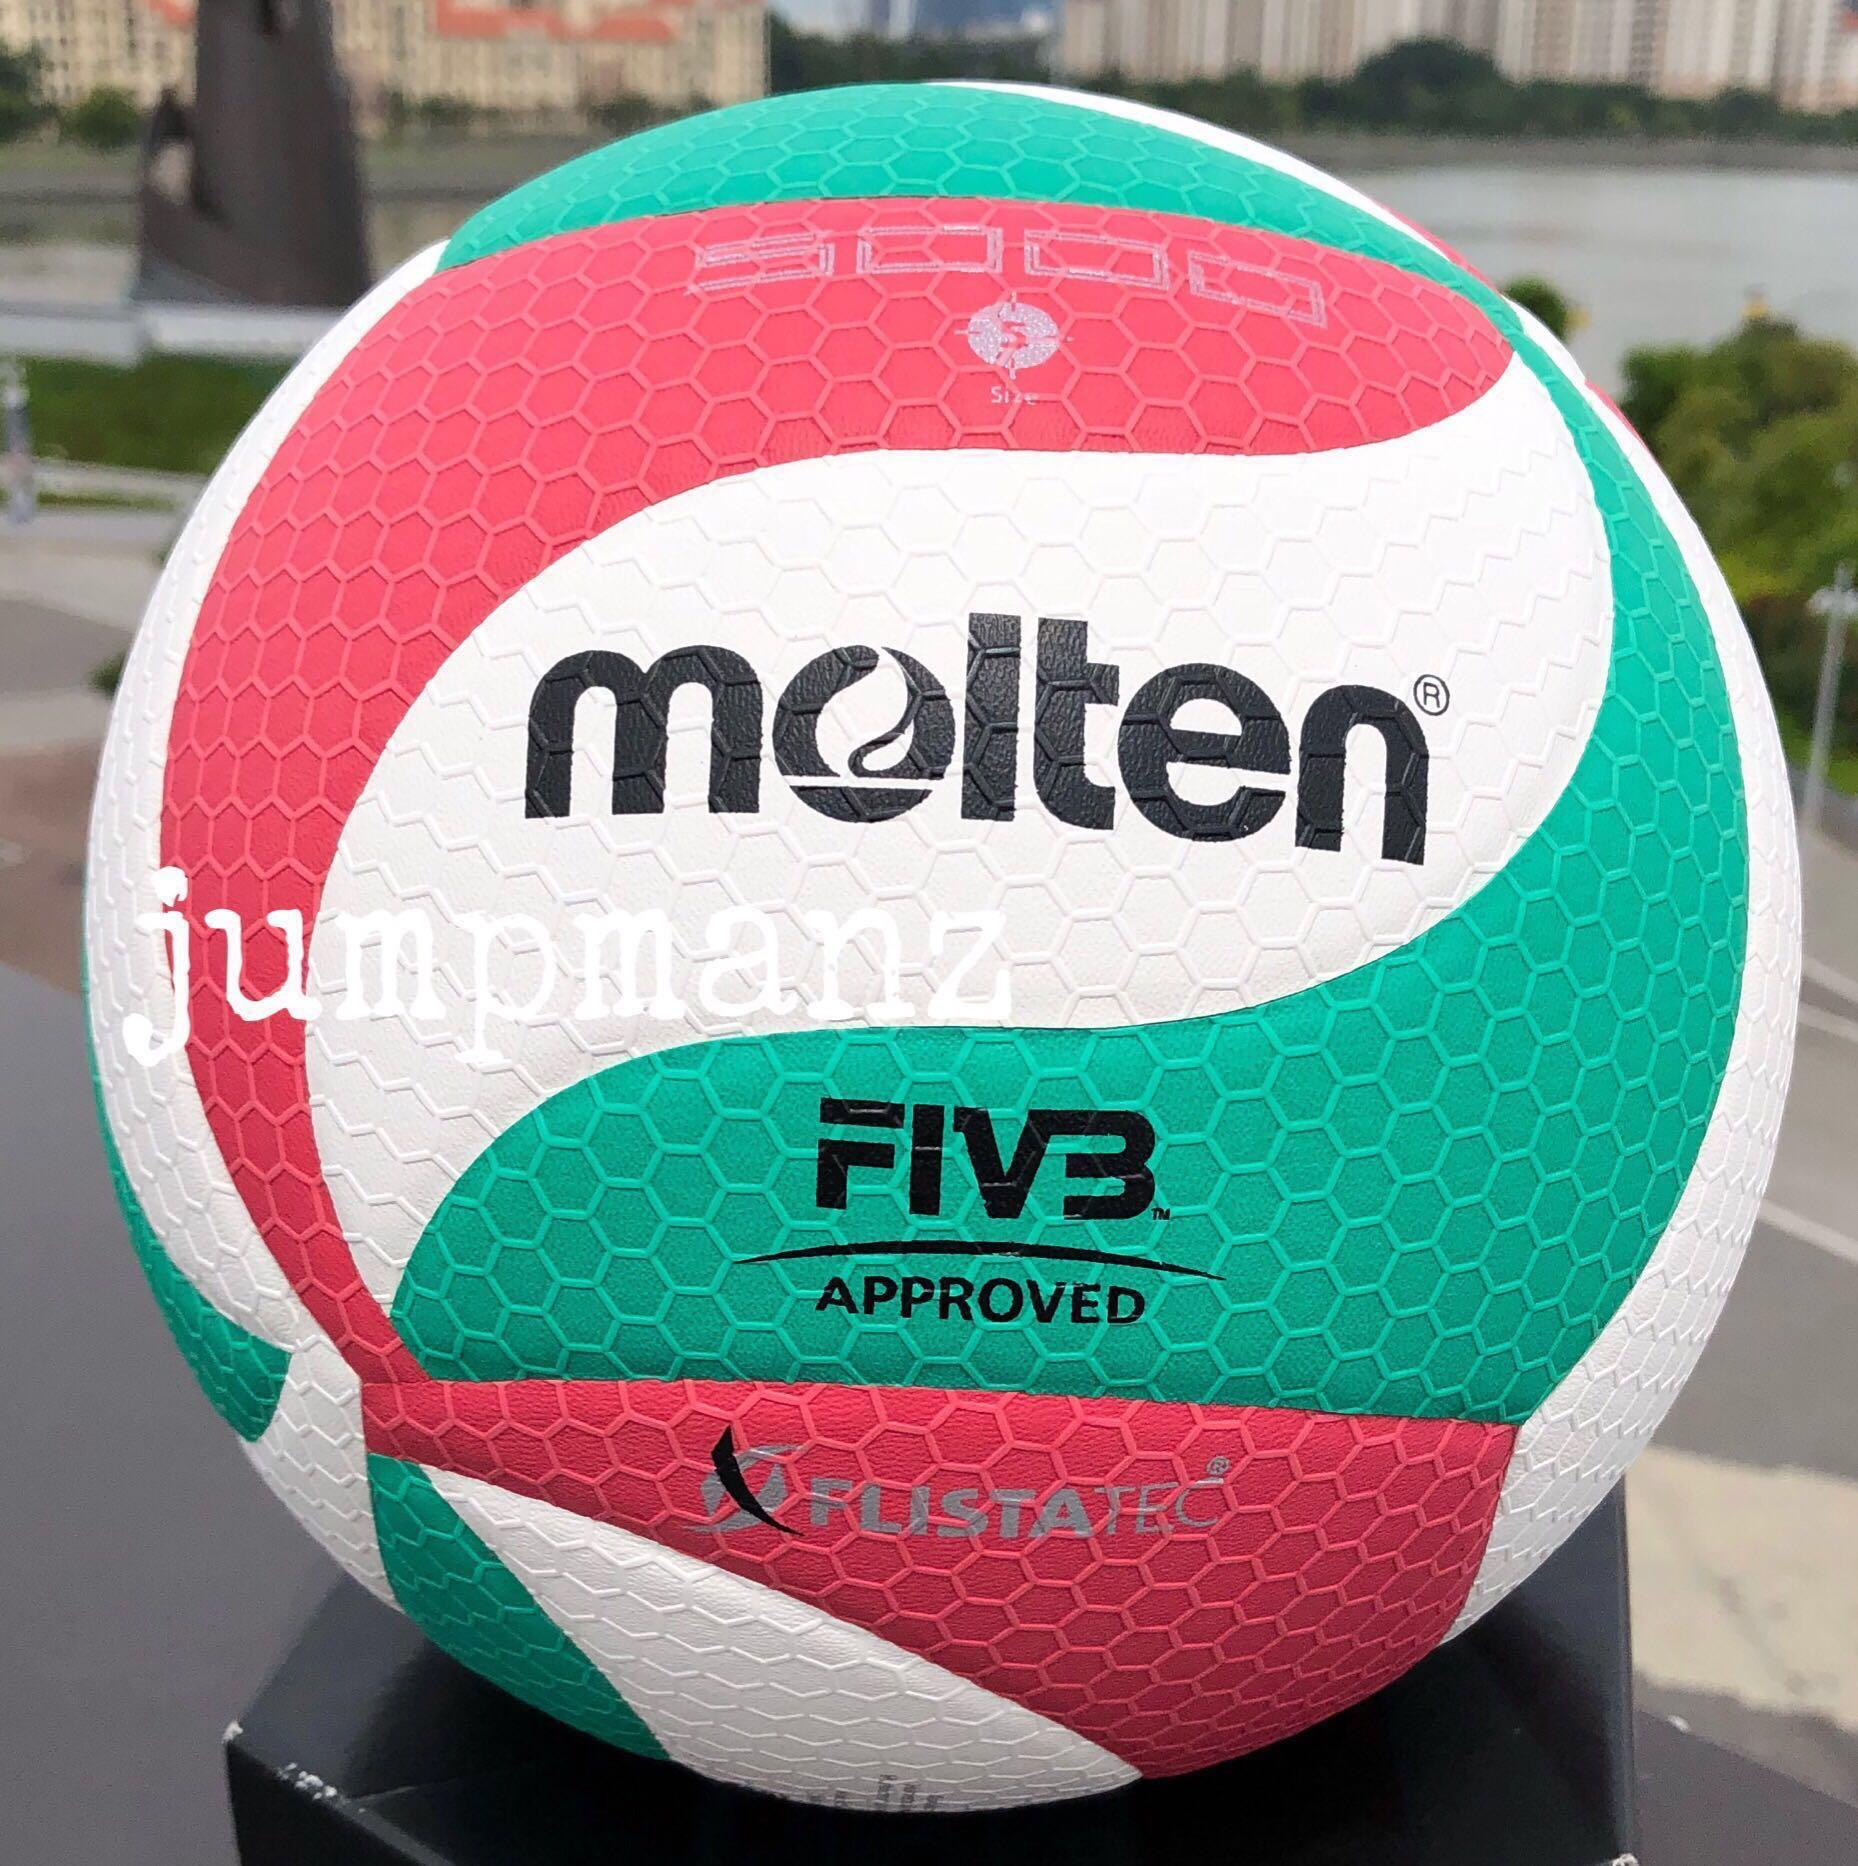 Molten V5m 5000 Seag Volleyball Free Delivery Brand New Sports Sports Games Equipment On Carousell